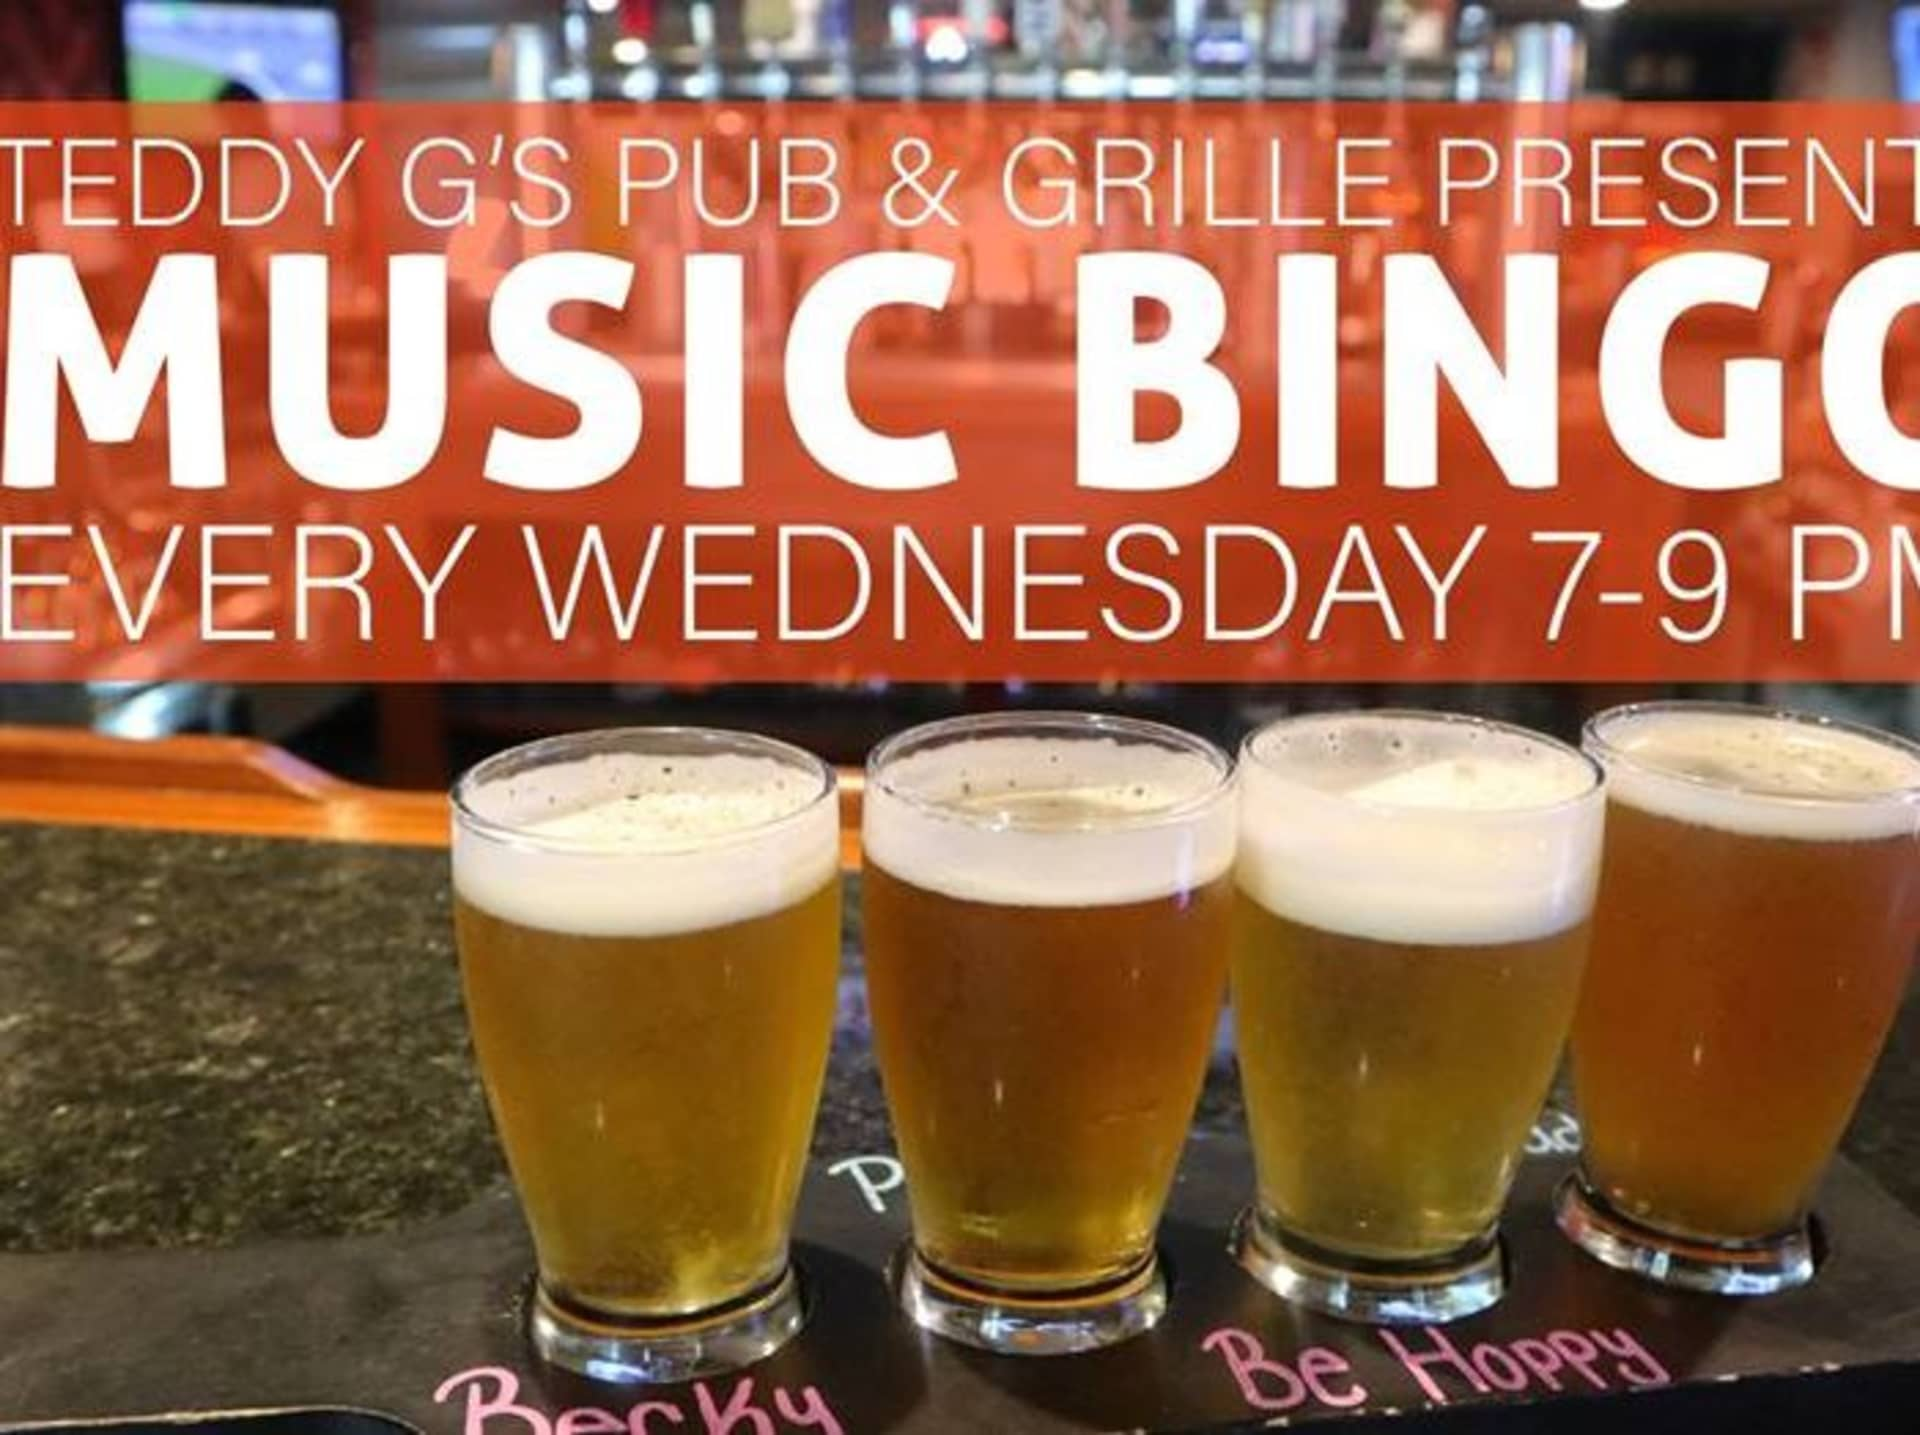 Music Bingo: EVERY Wednesday at Teddy G's!